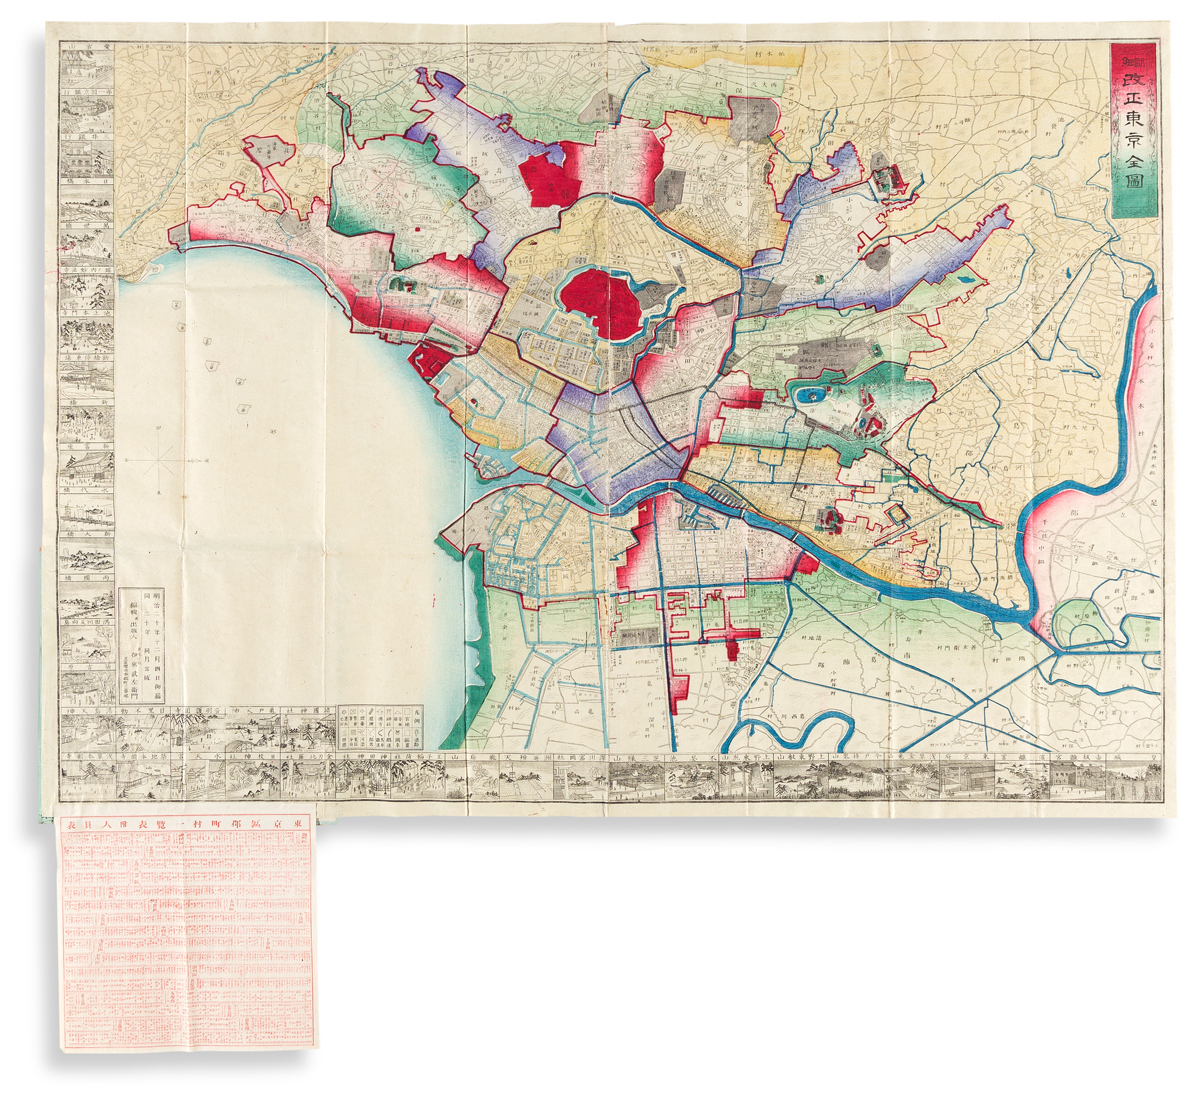 (JAPAN -- TOKYO.) Group of 3 Meiji-period color-printed engraved pocket maps of Tokyo illustrated with pictorial vignettes.